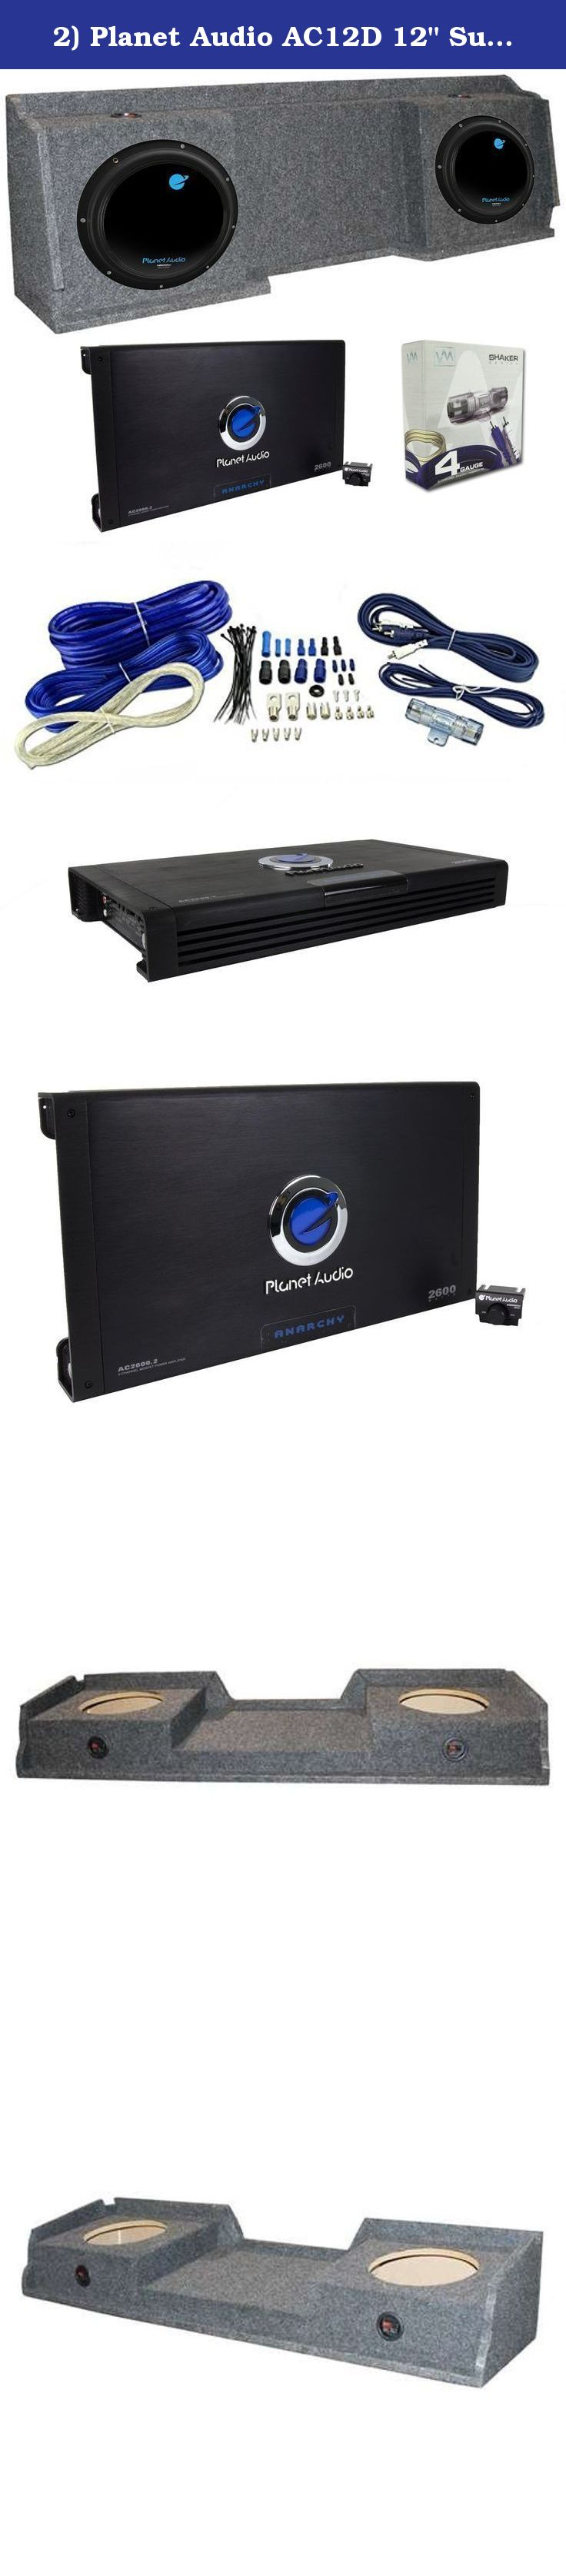 2 Planet Audio Ac12d 12 Subs Chevy Silverado Ext 99 06 Wiring